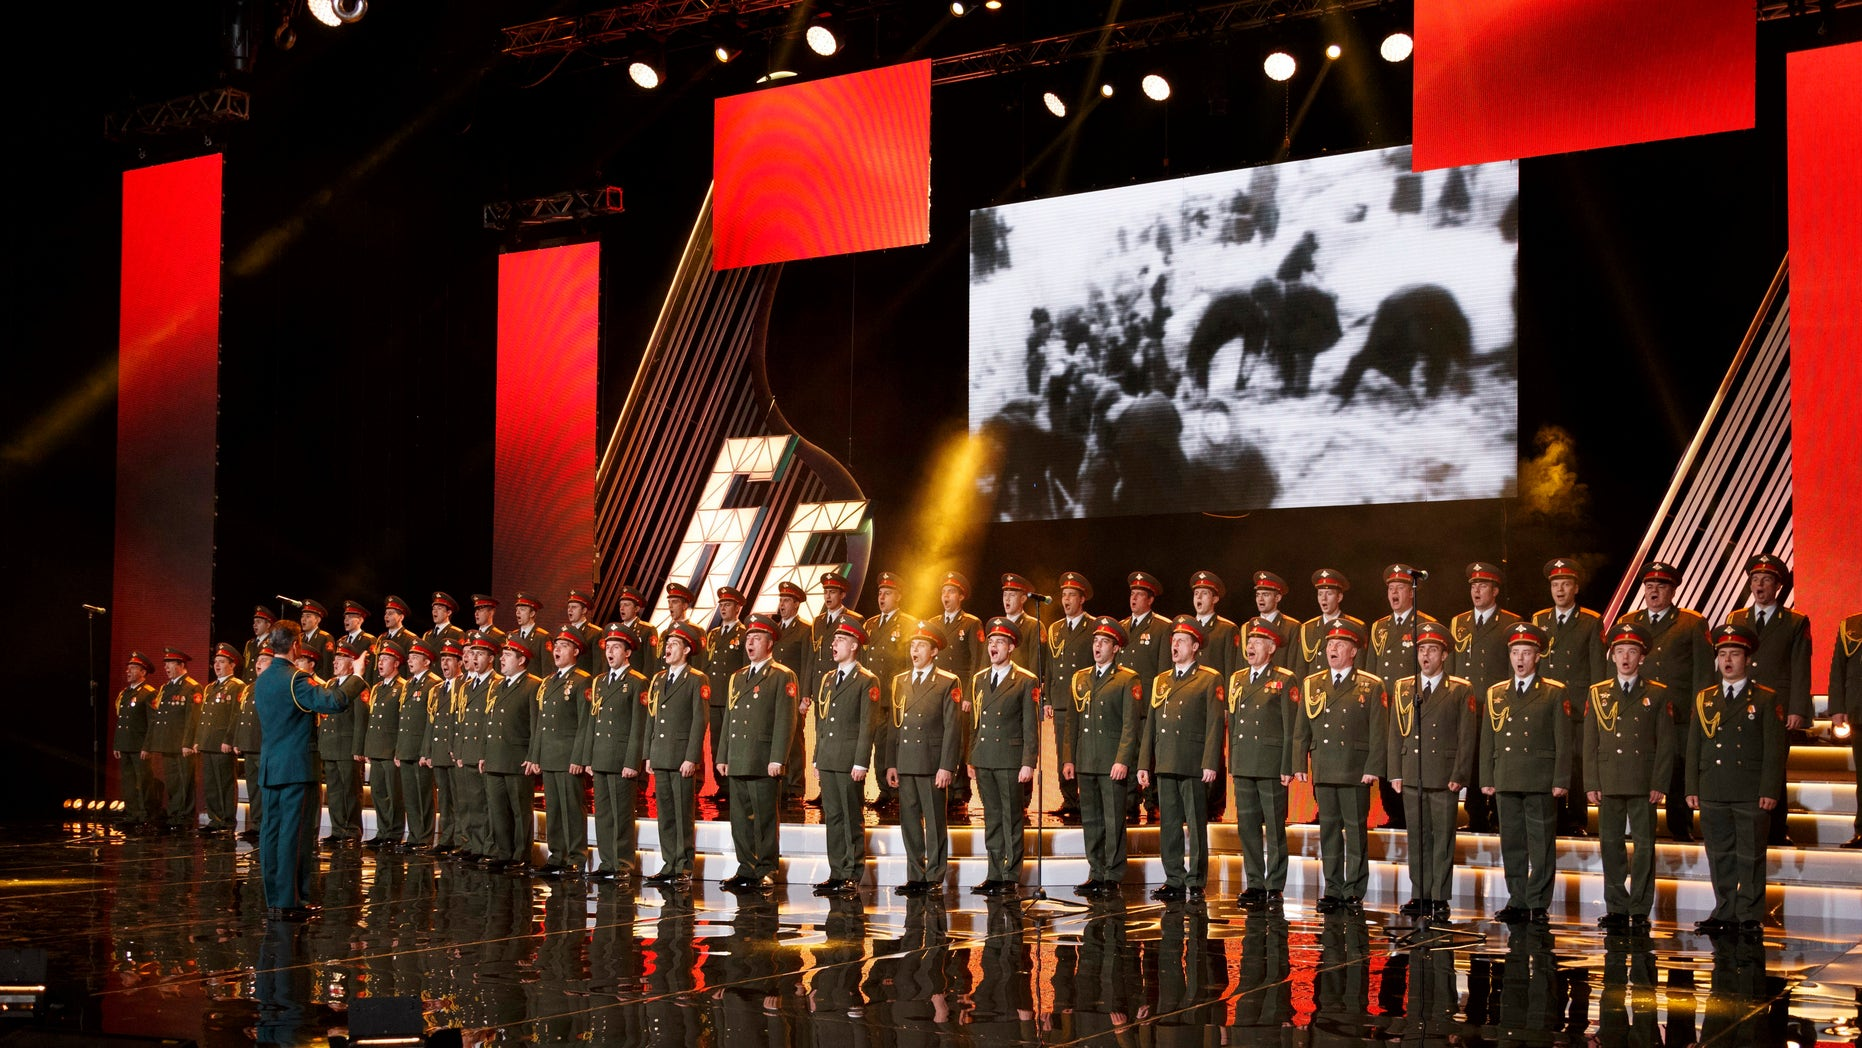 In this photo taken on Thursday, March 31, 2016, the Alexandrov Ensemble choir performs during a concert in Moscow, Russia. A Russian plane with 92 people aboard, including the well-known military band, crashed into the Black Sea on its way to Syria on Sunday, Dec. 25, minutes after takeoff from the resort city of Sochi, the Defense Ministry said. The Tu-154, which belonged to the ministry, was taking the Alexandrov Ensemble to a concert at the Russian air base in Syria. (AP Photo)